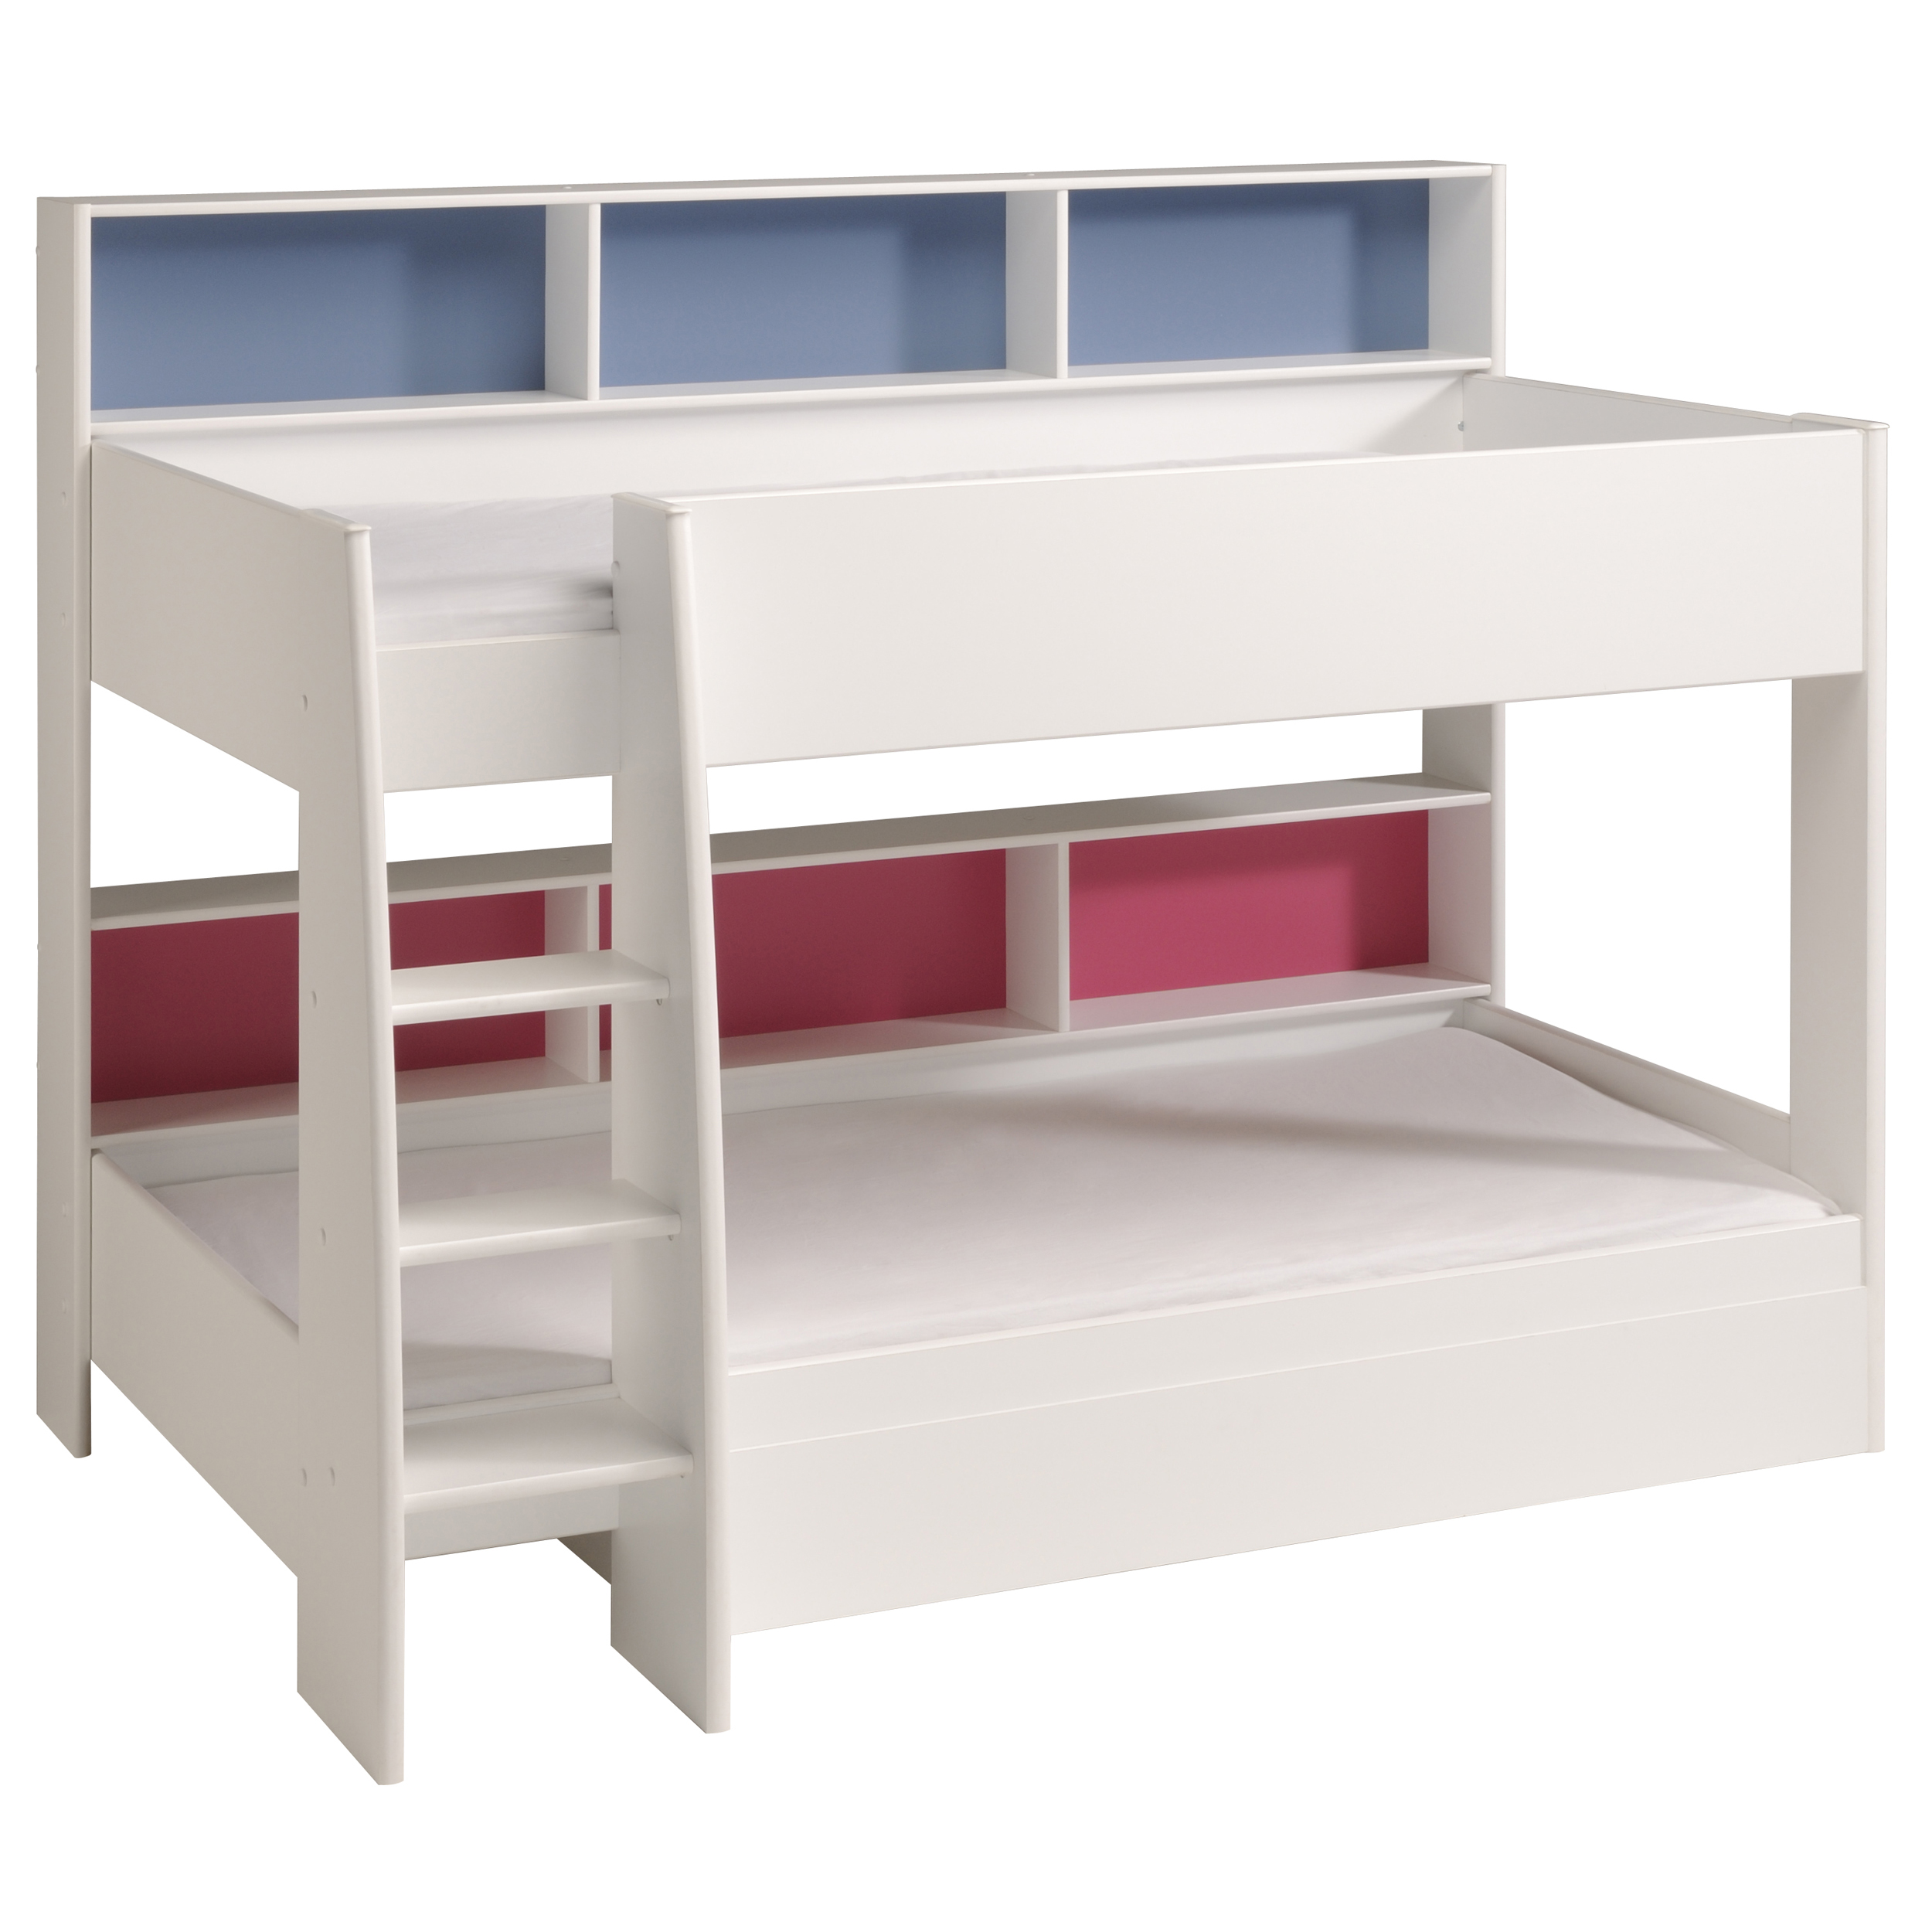 Scallywags Bedroom Furniture Parisot Tam Tam Bunk Bed White Rainbow Wood